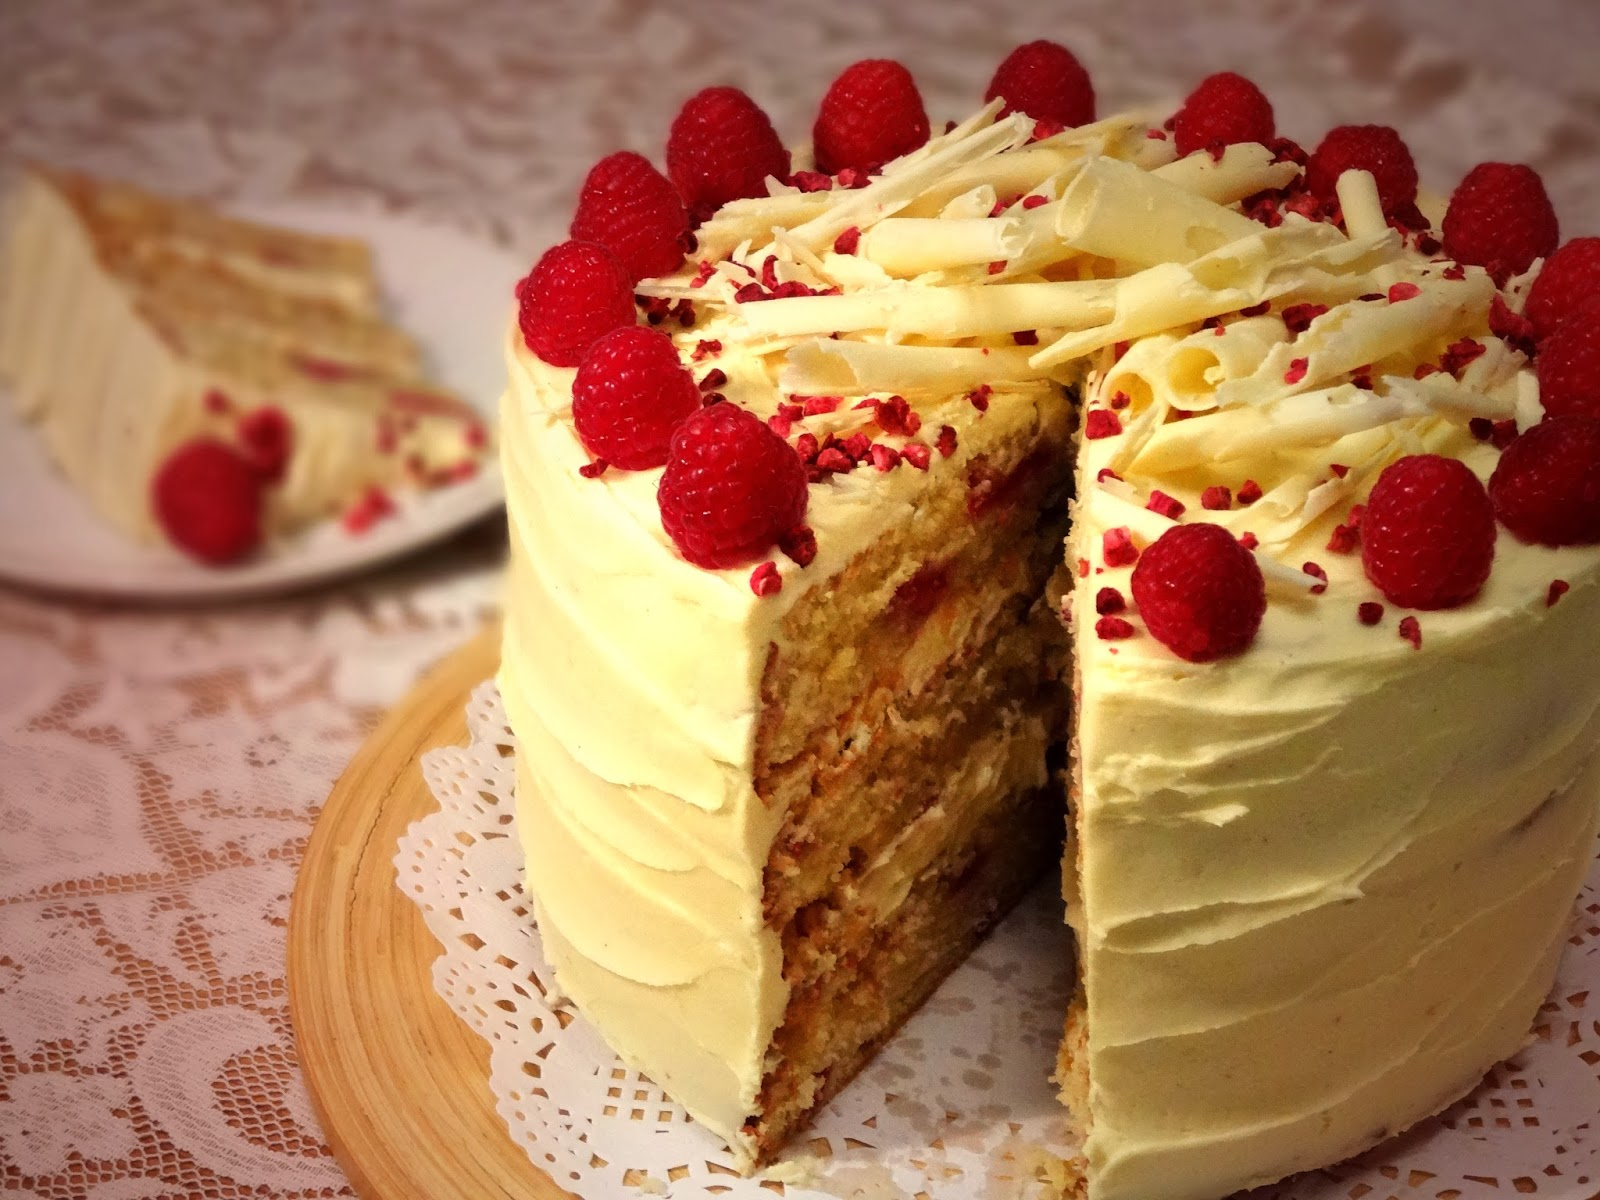 Rosie Bakes It: Raspberry & White Chocolate Layer Cake